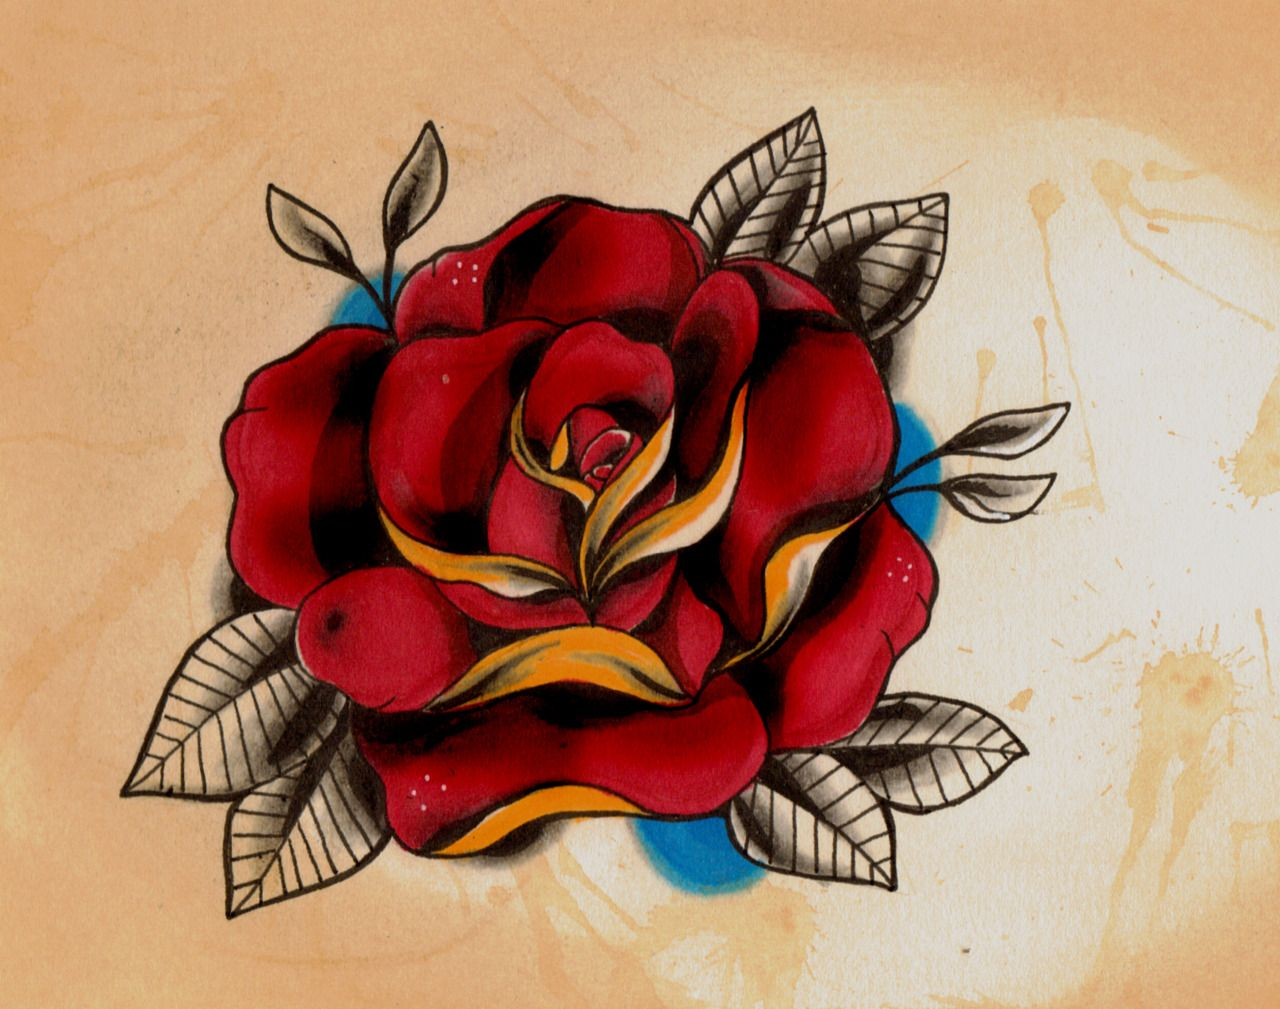 New school rose Old tattoo style Old school rose